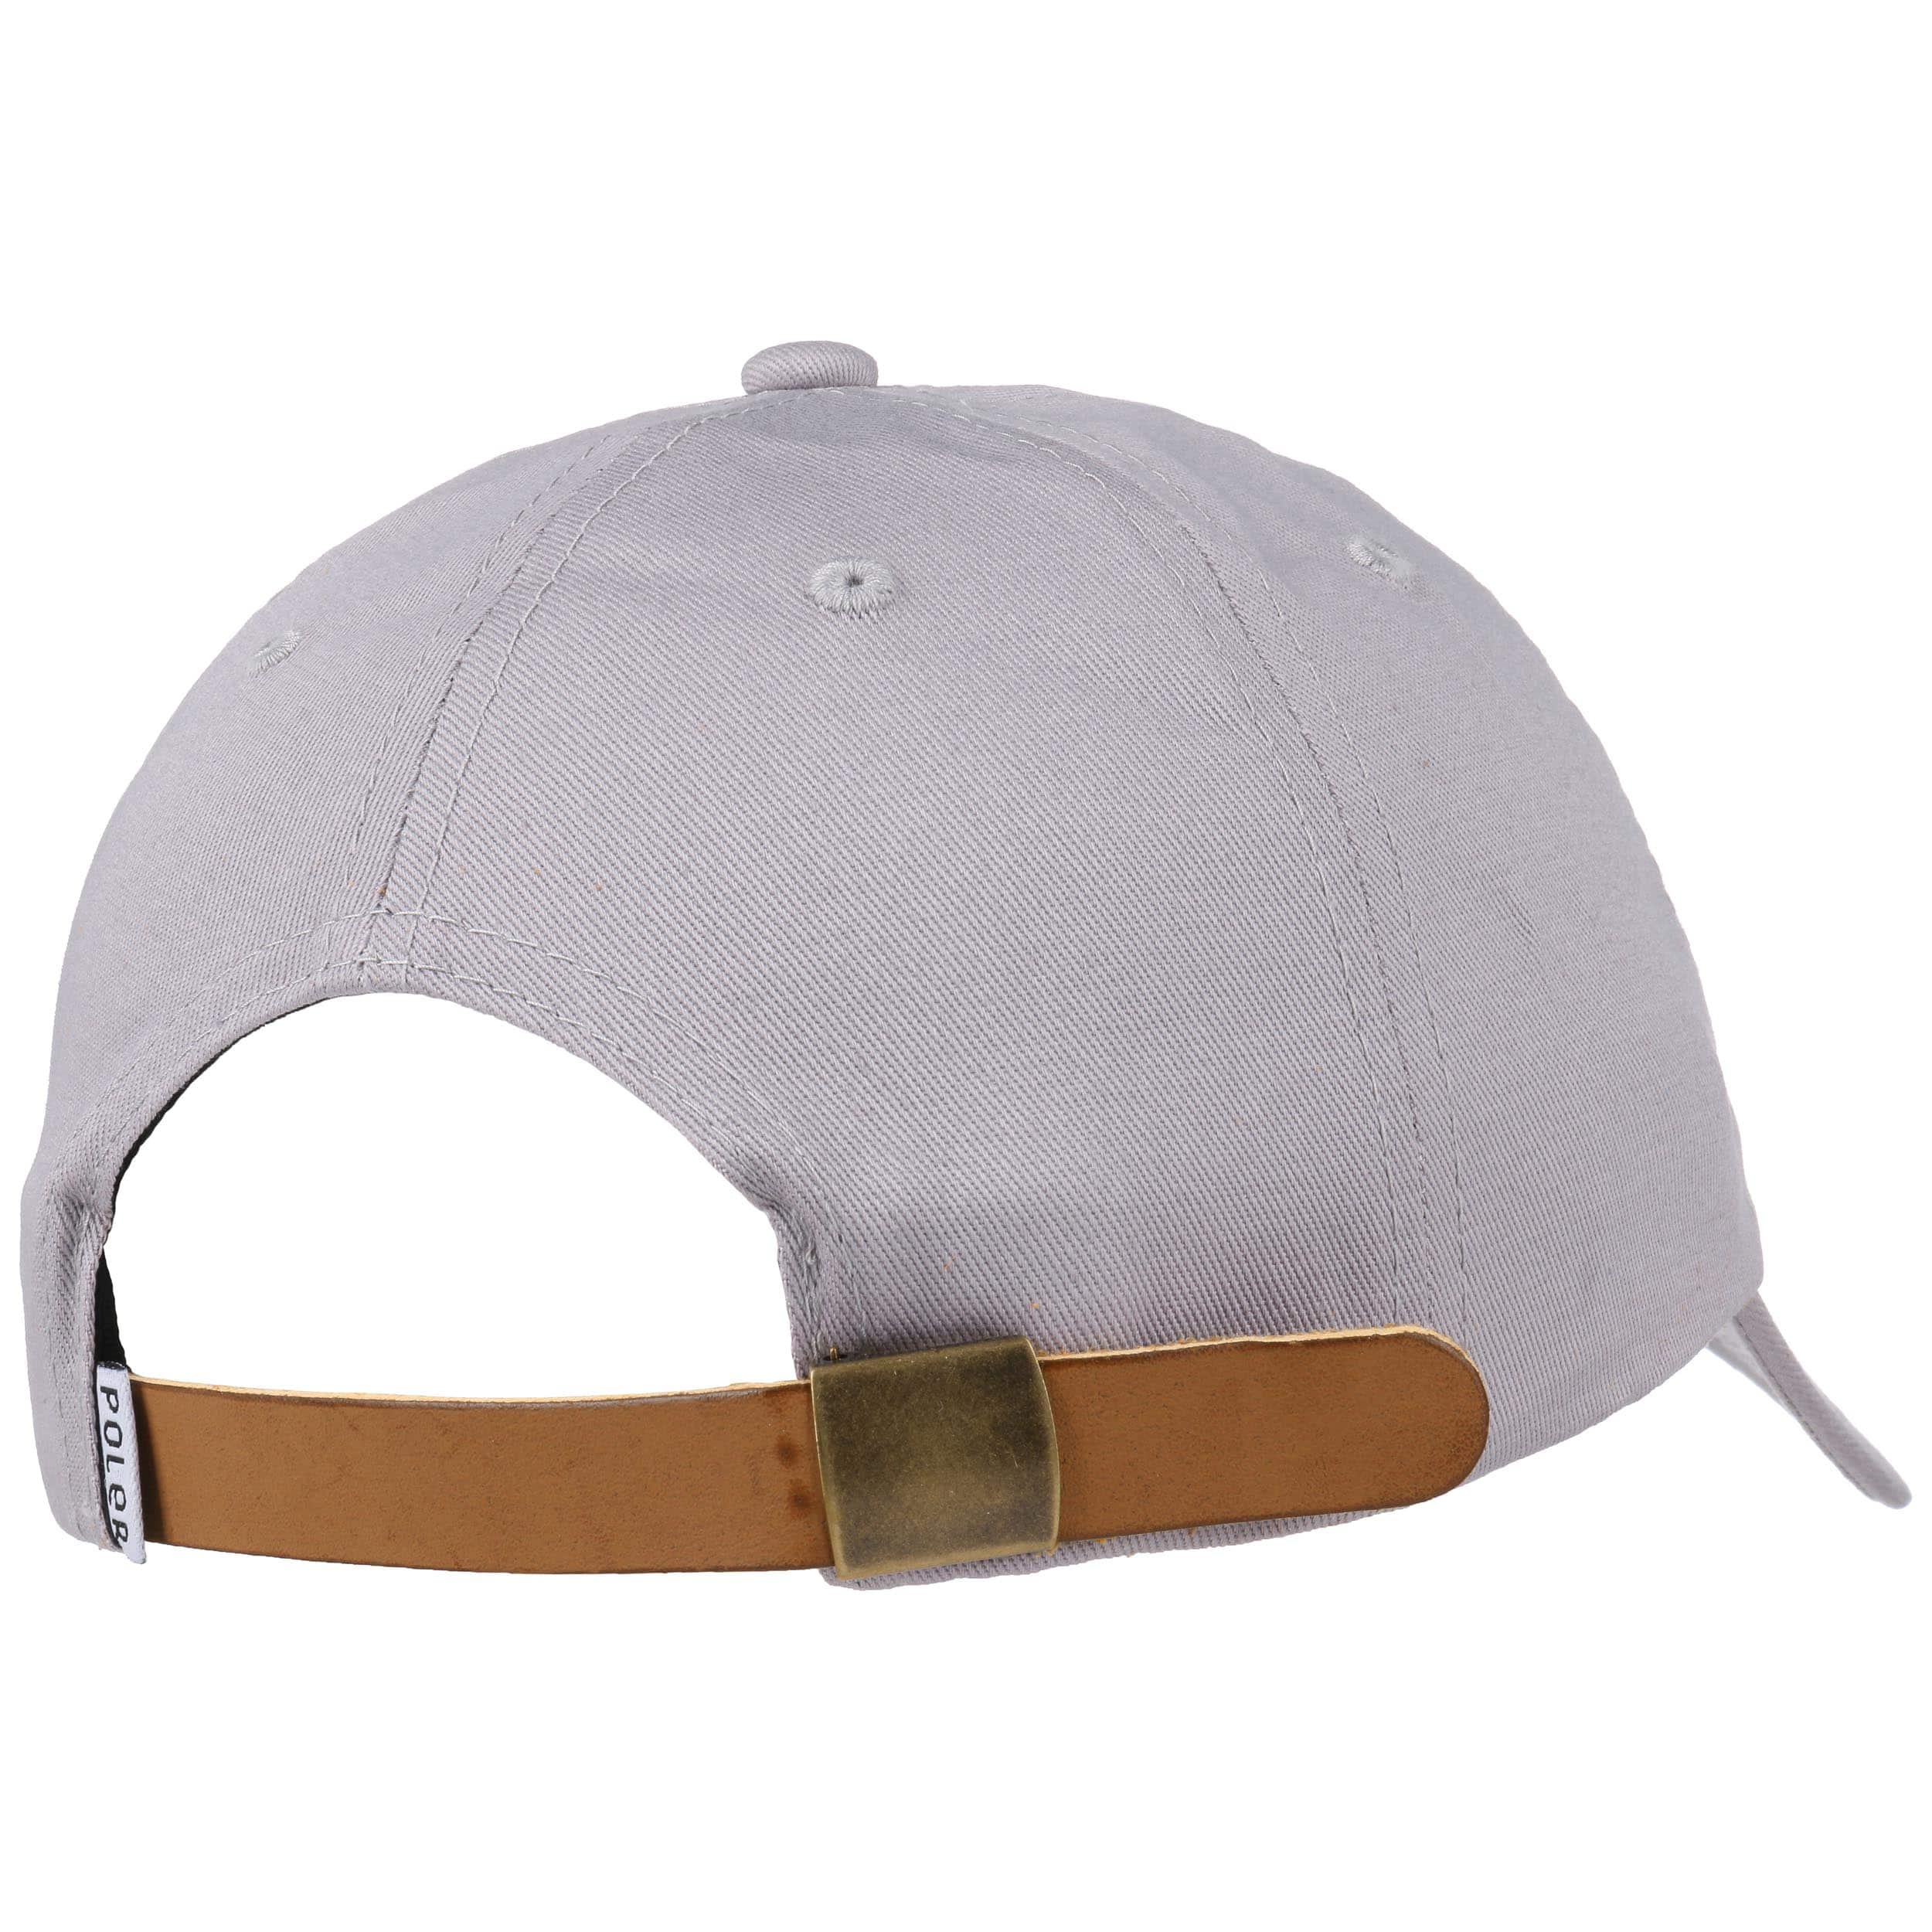 7d9bdce3cef1fd ... Cyclo Dad Hat Strapback Cap by Poler - light grey 3 ...